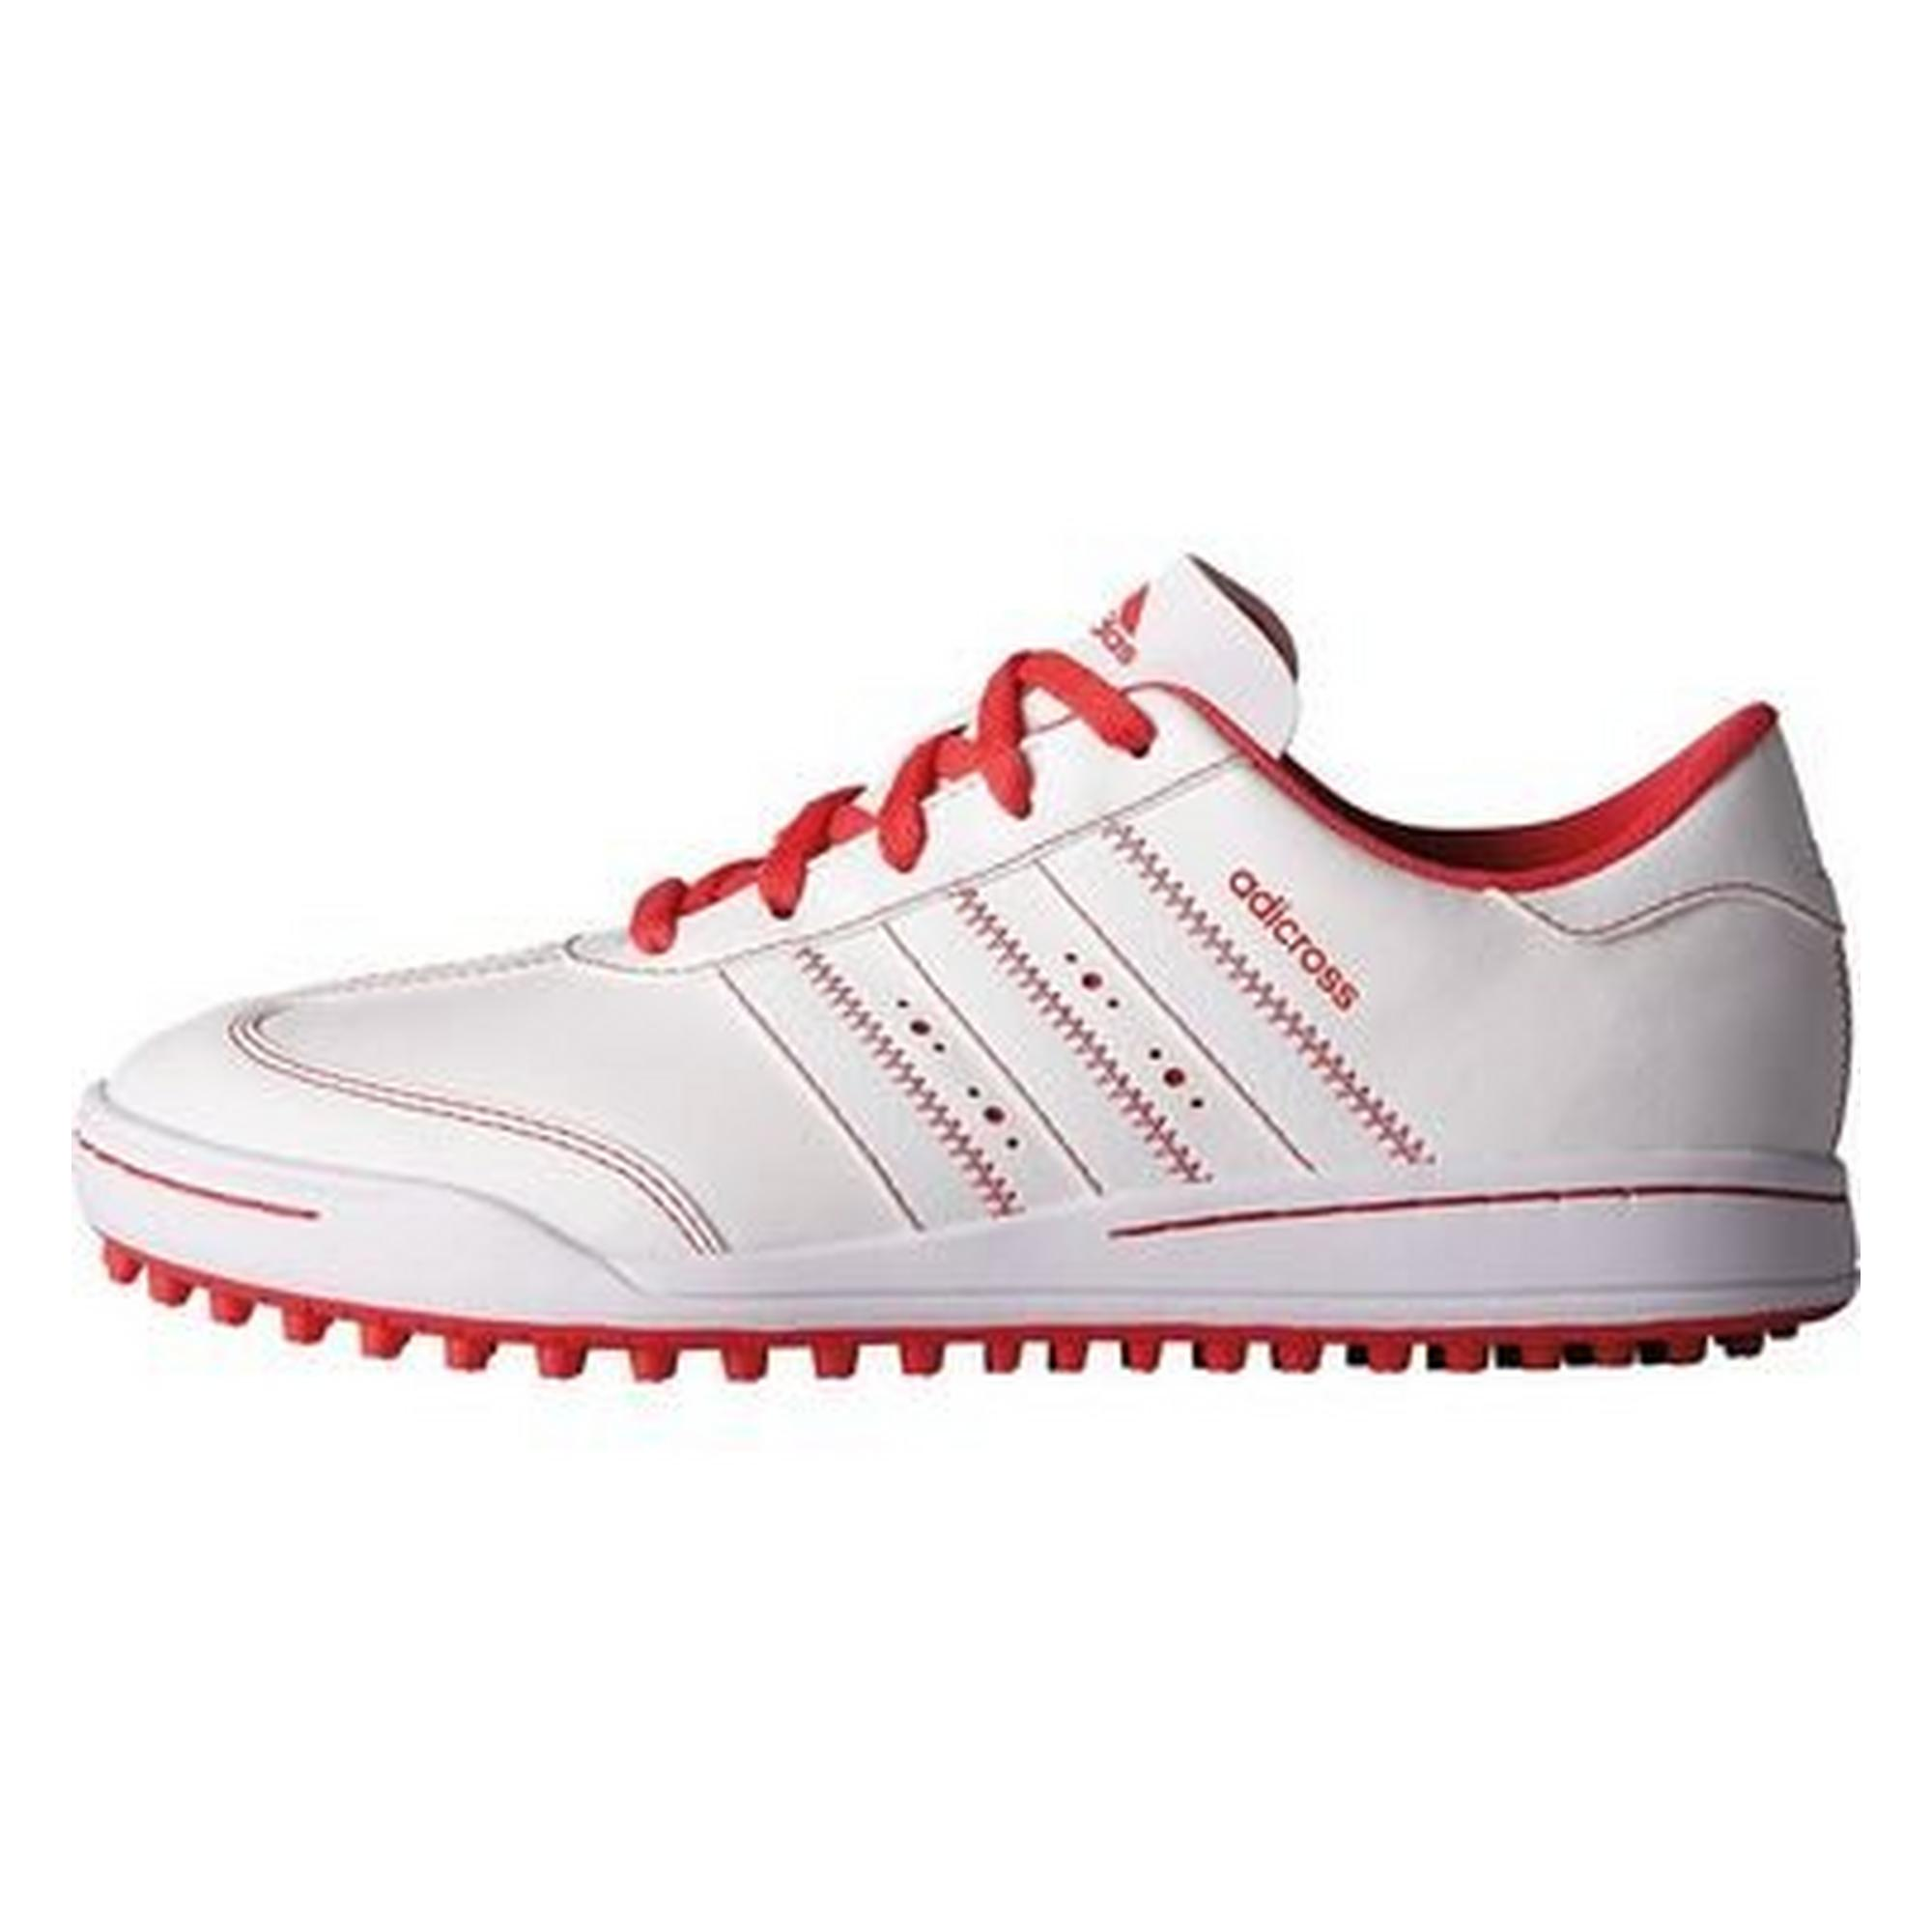 Junior Adicross V Spikeless Golf Shoe - White/Pink